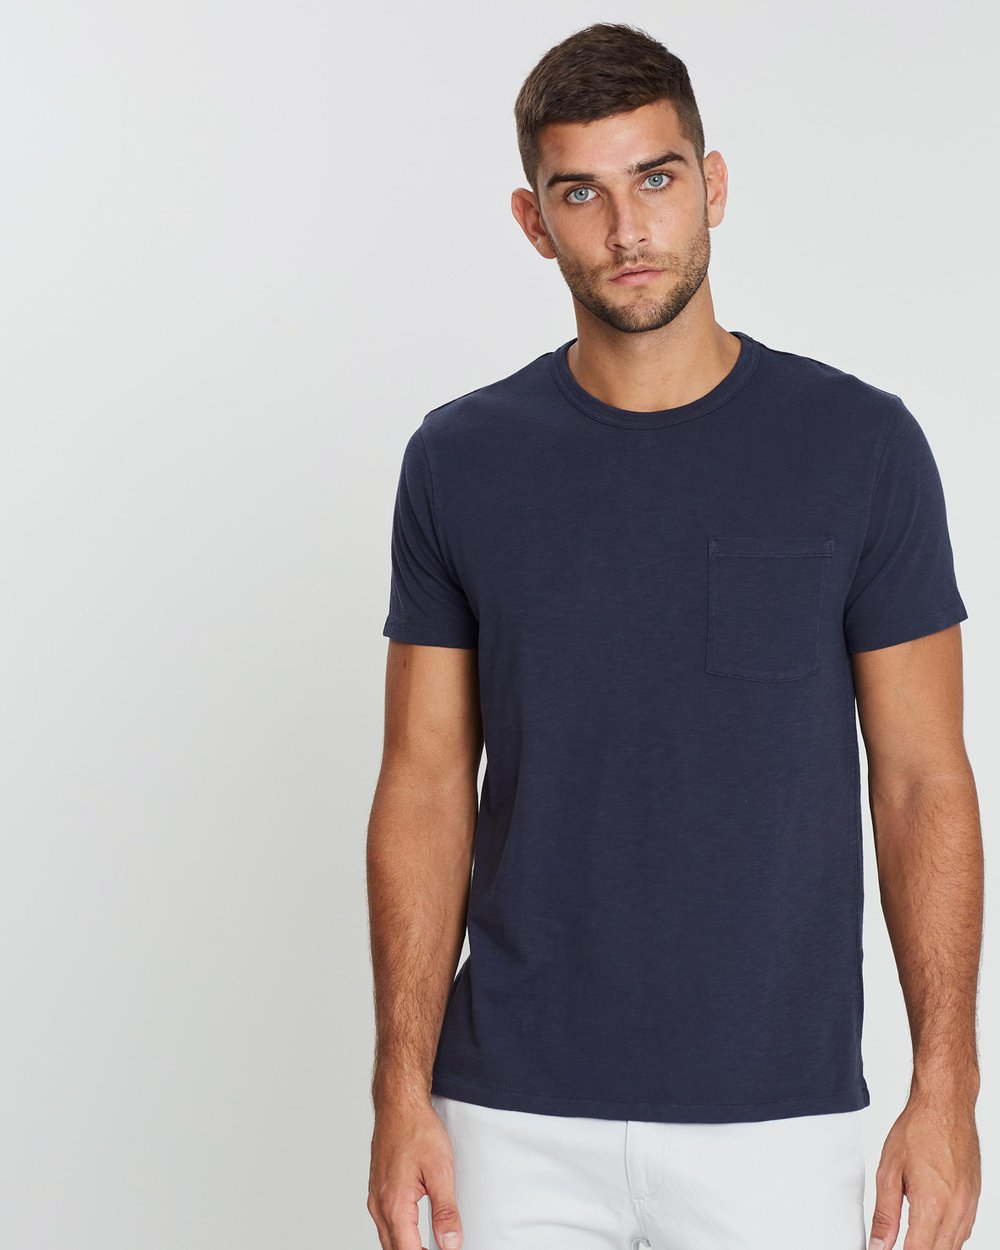 e31f8490c7489 Garment Dye Pocket Crew T-Shirt by J.Crew Online